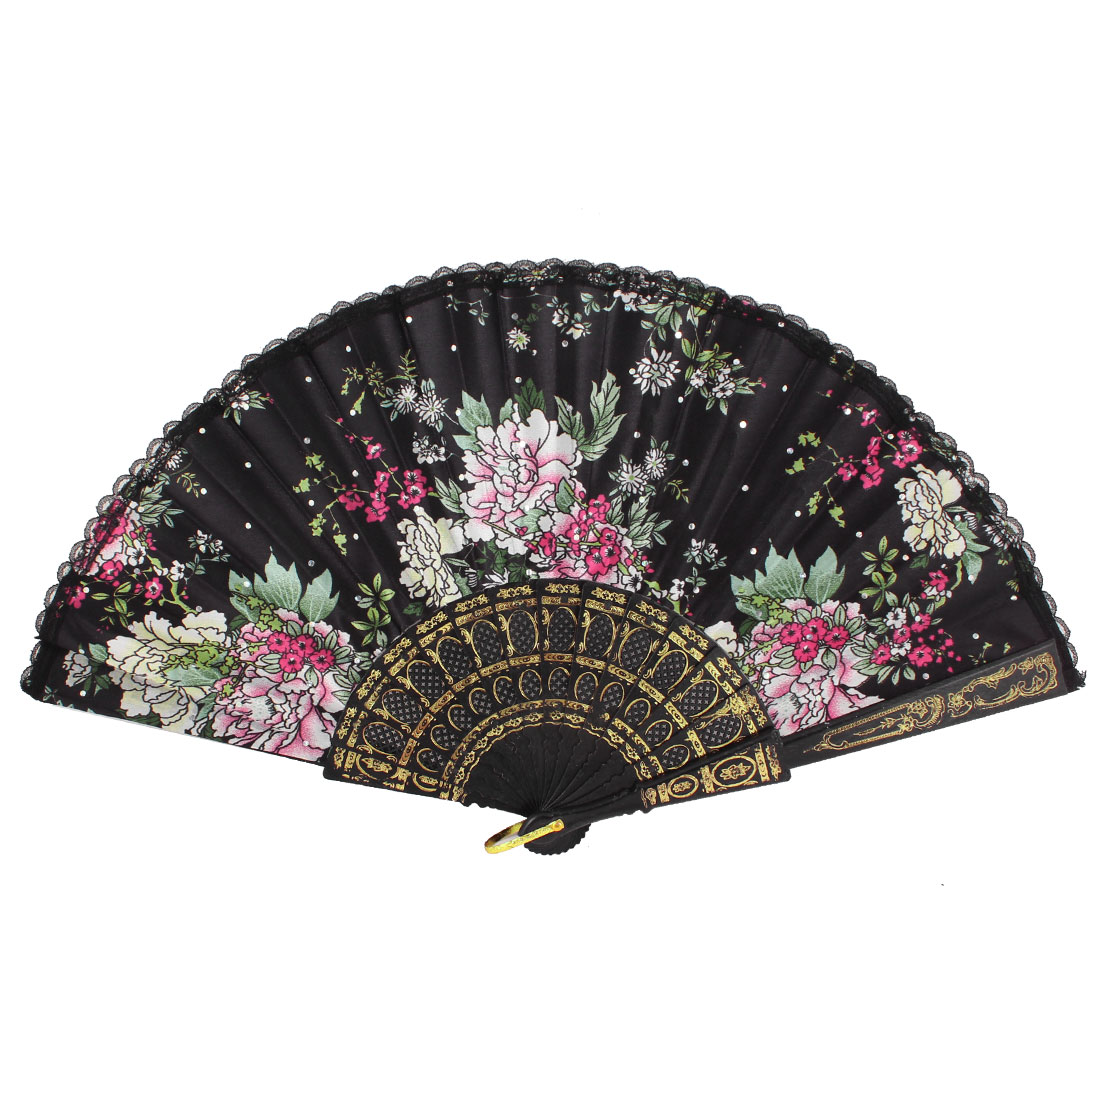 Black Lace Hem Decor Colorful Peony Pattern Folding Cooling Hand Fan